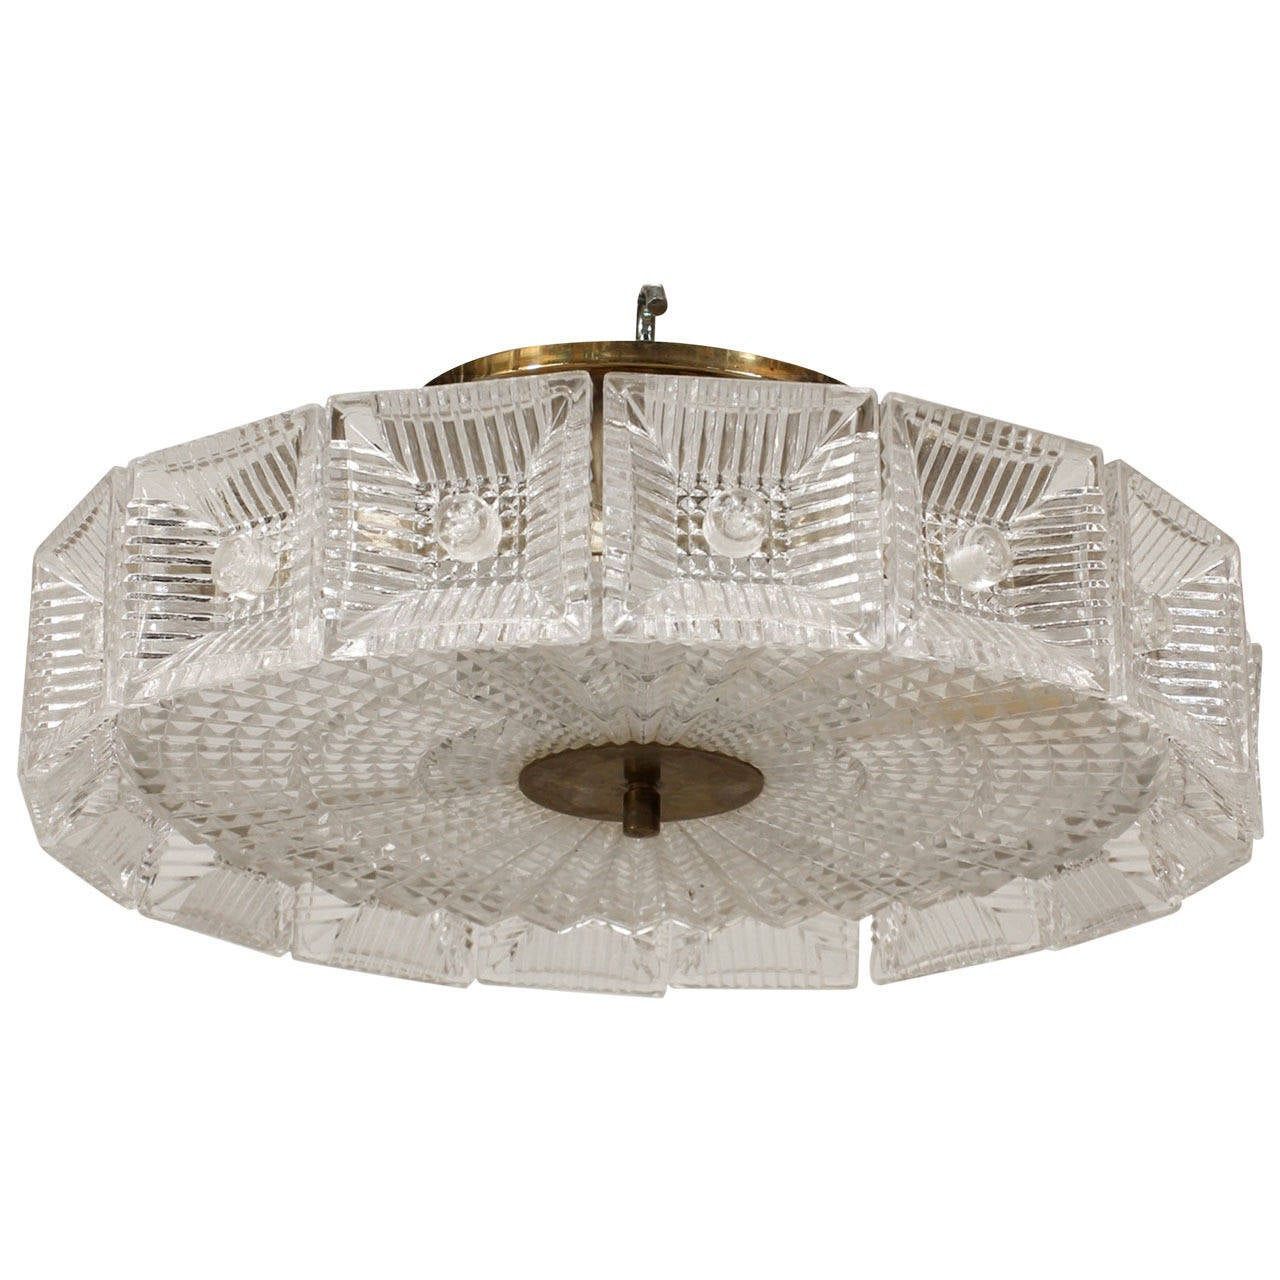 Mid-20th Century Swedish Orrefors Textured Glass Chandelier